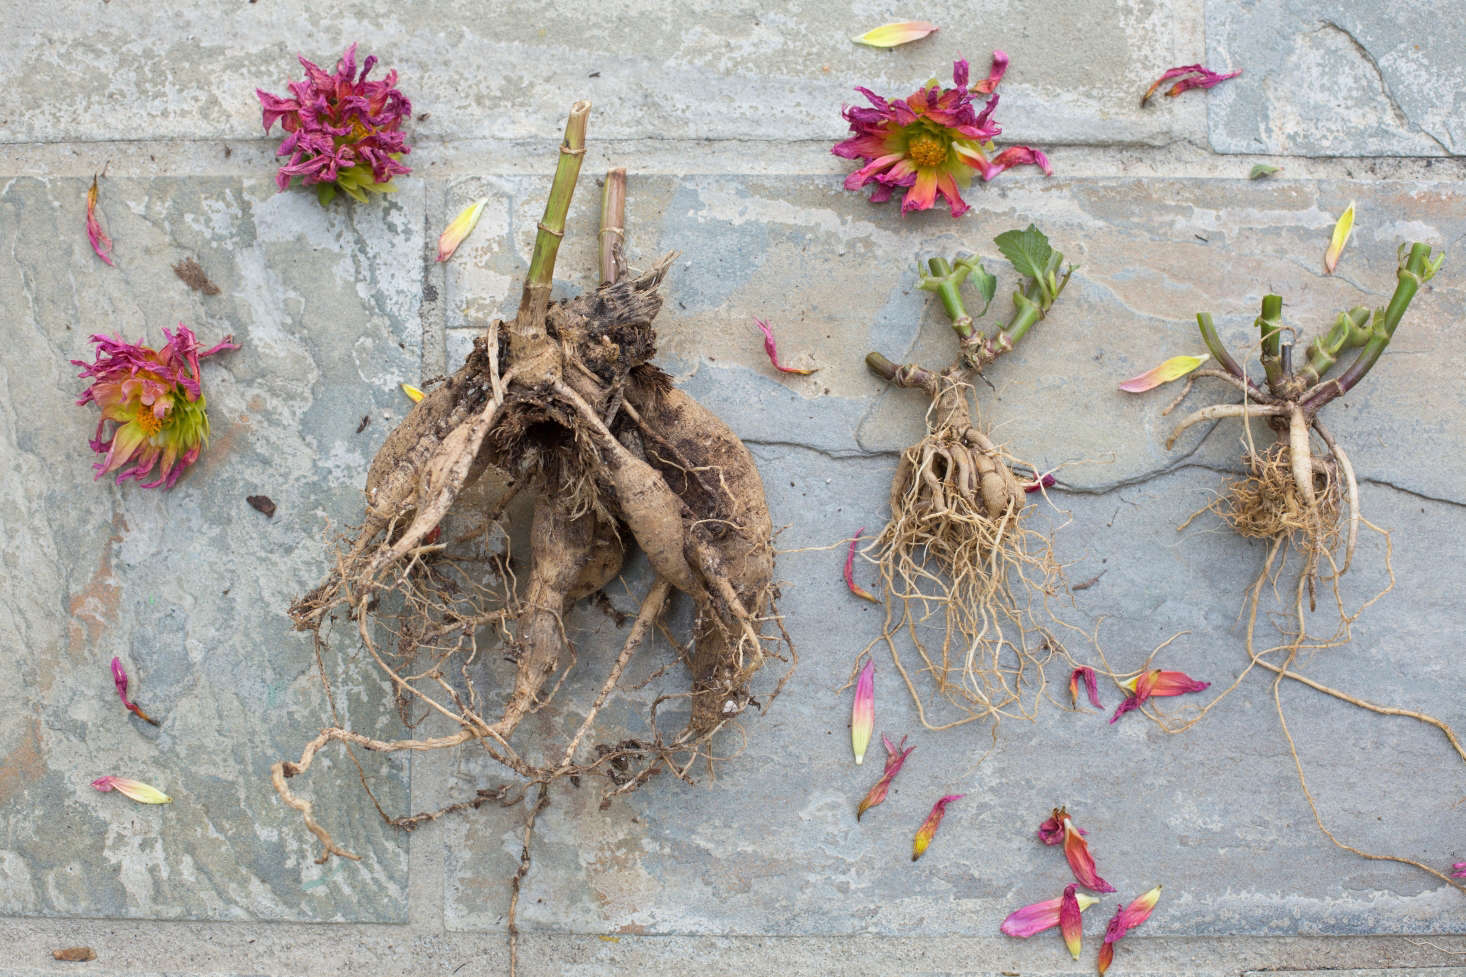 Photograph by Mimi Giboin for Gardenista, from DIY: How to Store Dahlia Tubers in Winter.